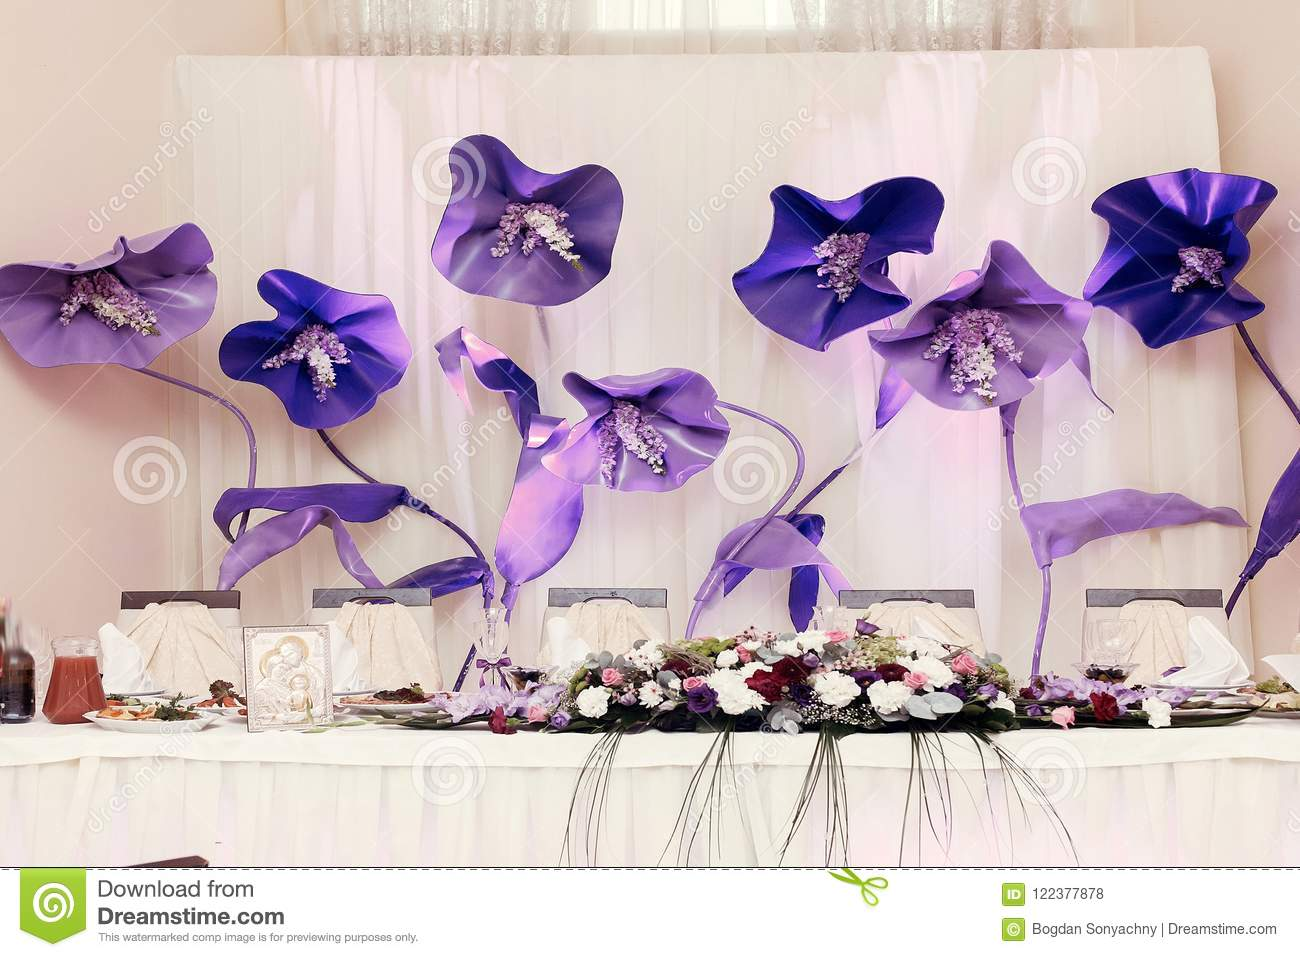 Big Purple Flowers At Wedding Centerpiece For Bride Groom Settin